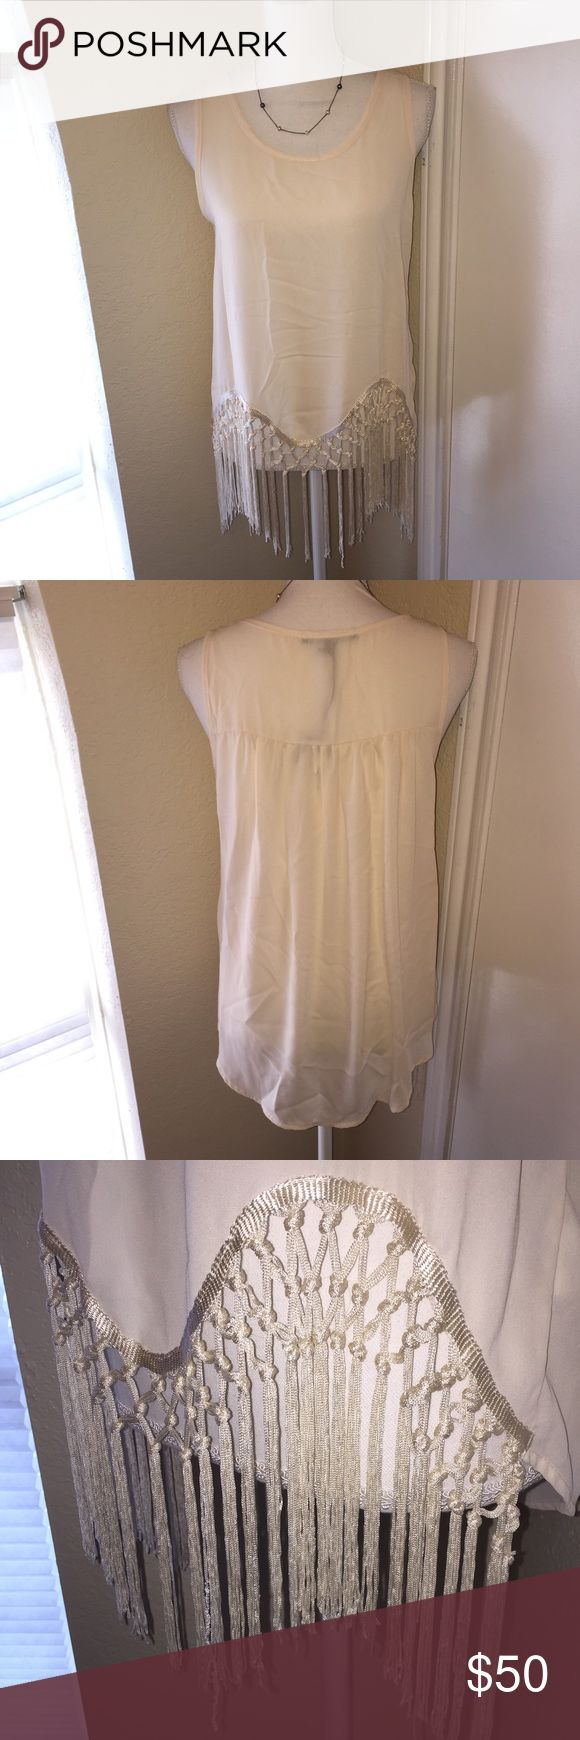 Romeo + Juliet Couture IVORY Fringe Blouse Simply chic, this off-white top is airy and feminine. Perfect for Sunday brunch or to be paired with leggings. Made unique by the woven threading and long back. NWT tag damaged to prevent returns. Some barely noticeable pulling on some of hanging threads in the bottom fringe. Pictured above. Romeo & Juliet Couture Tops Blouses